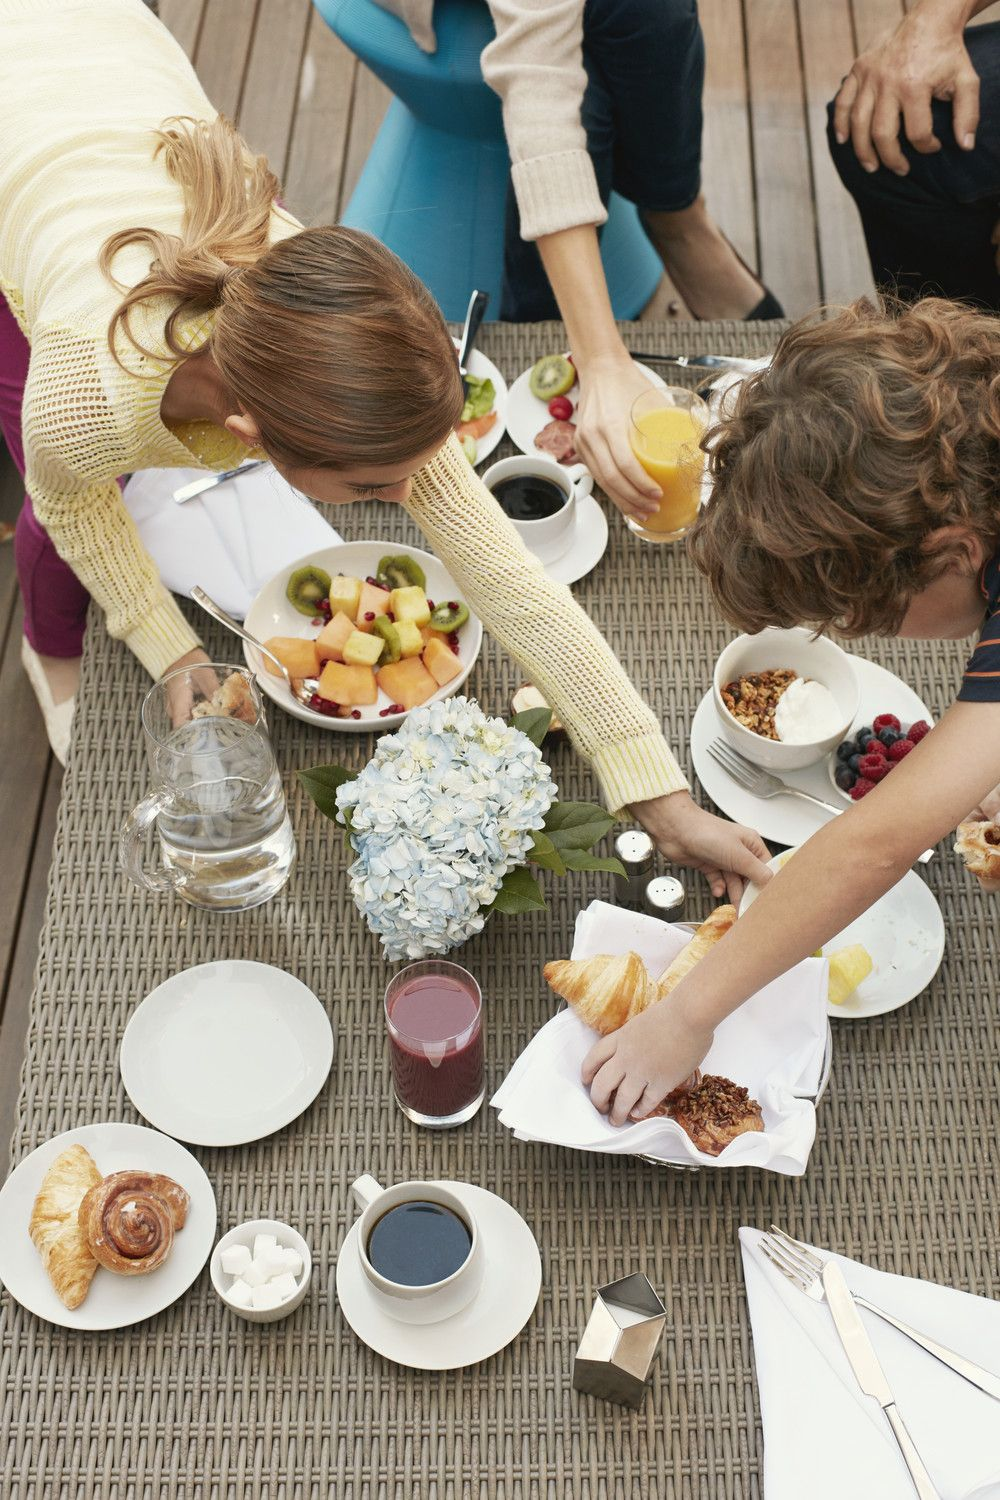 Nothing is better as a delicious Sunday breakfast with the family.